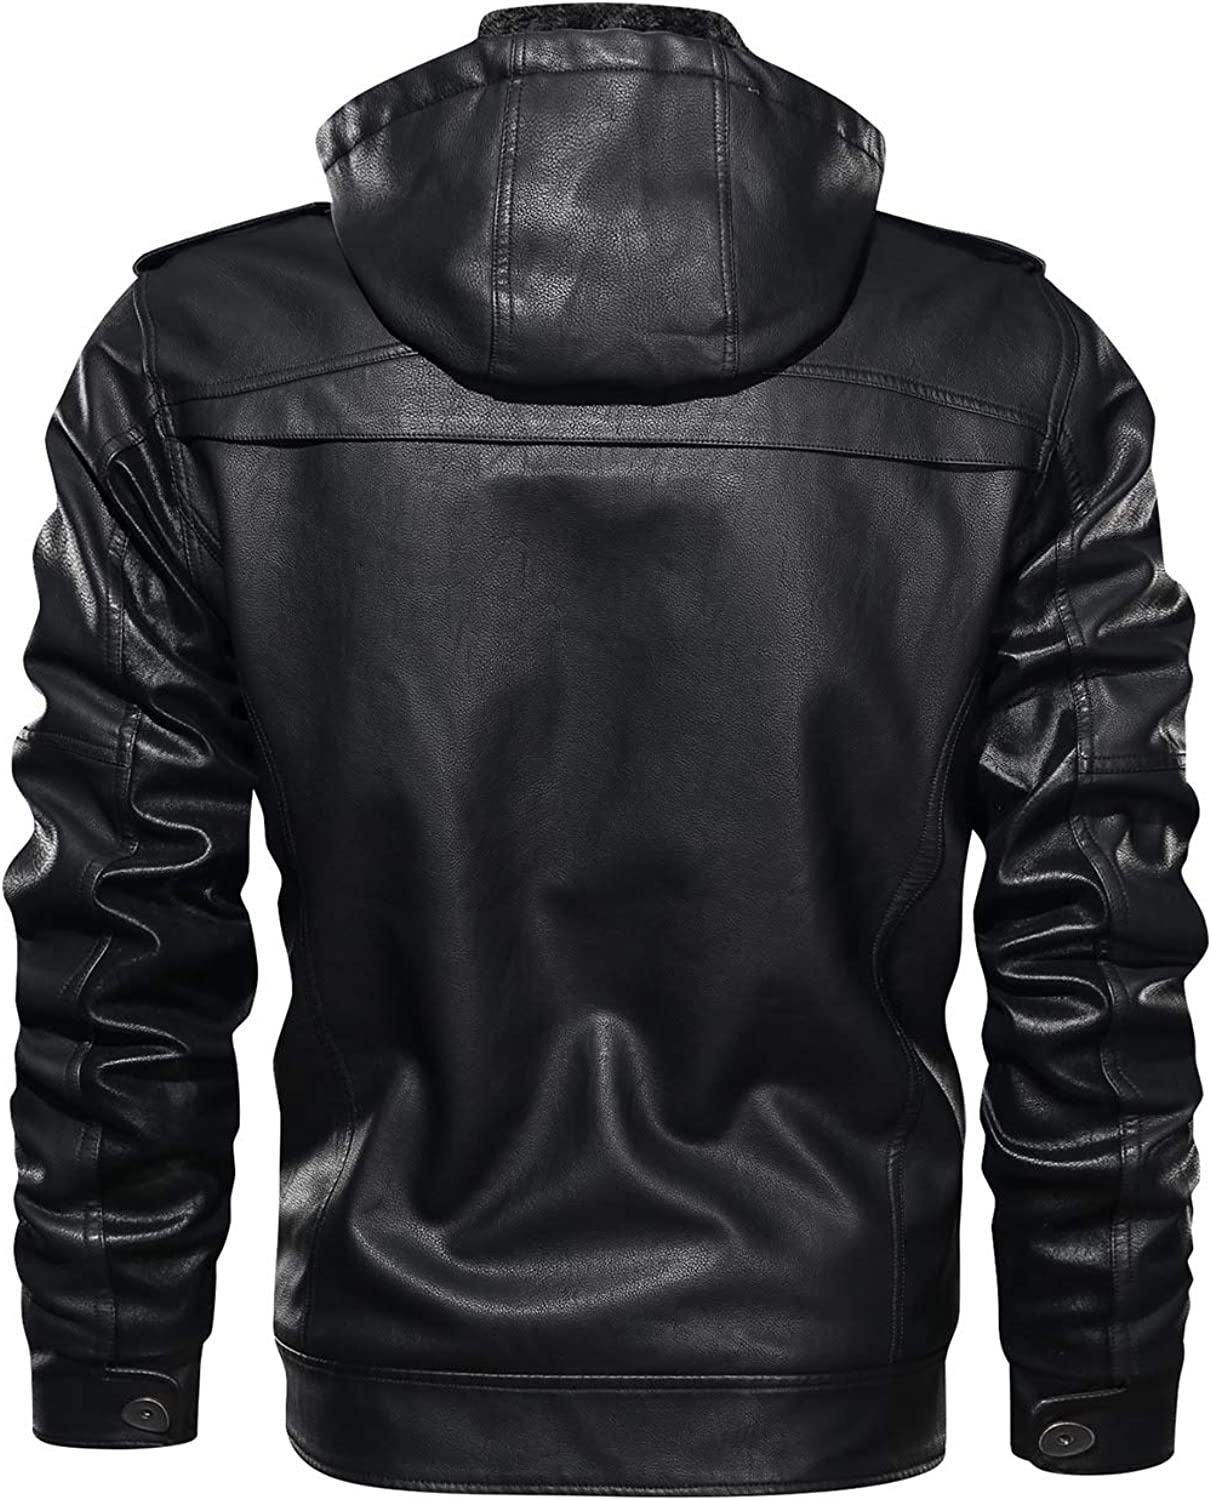 HOOD CREW Men/'s Zip Up Slim Faux Leather Motorcycle Bomber Black Brown Jacket with a Removable Hood